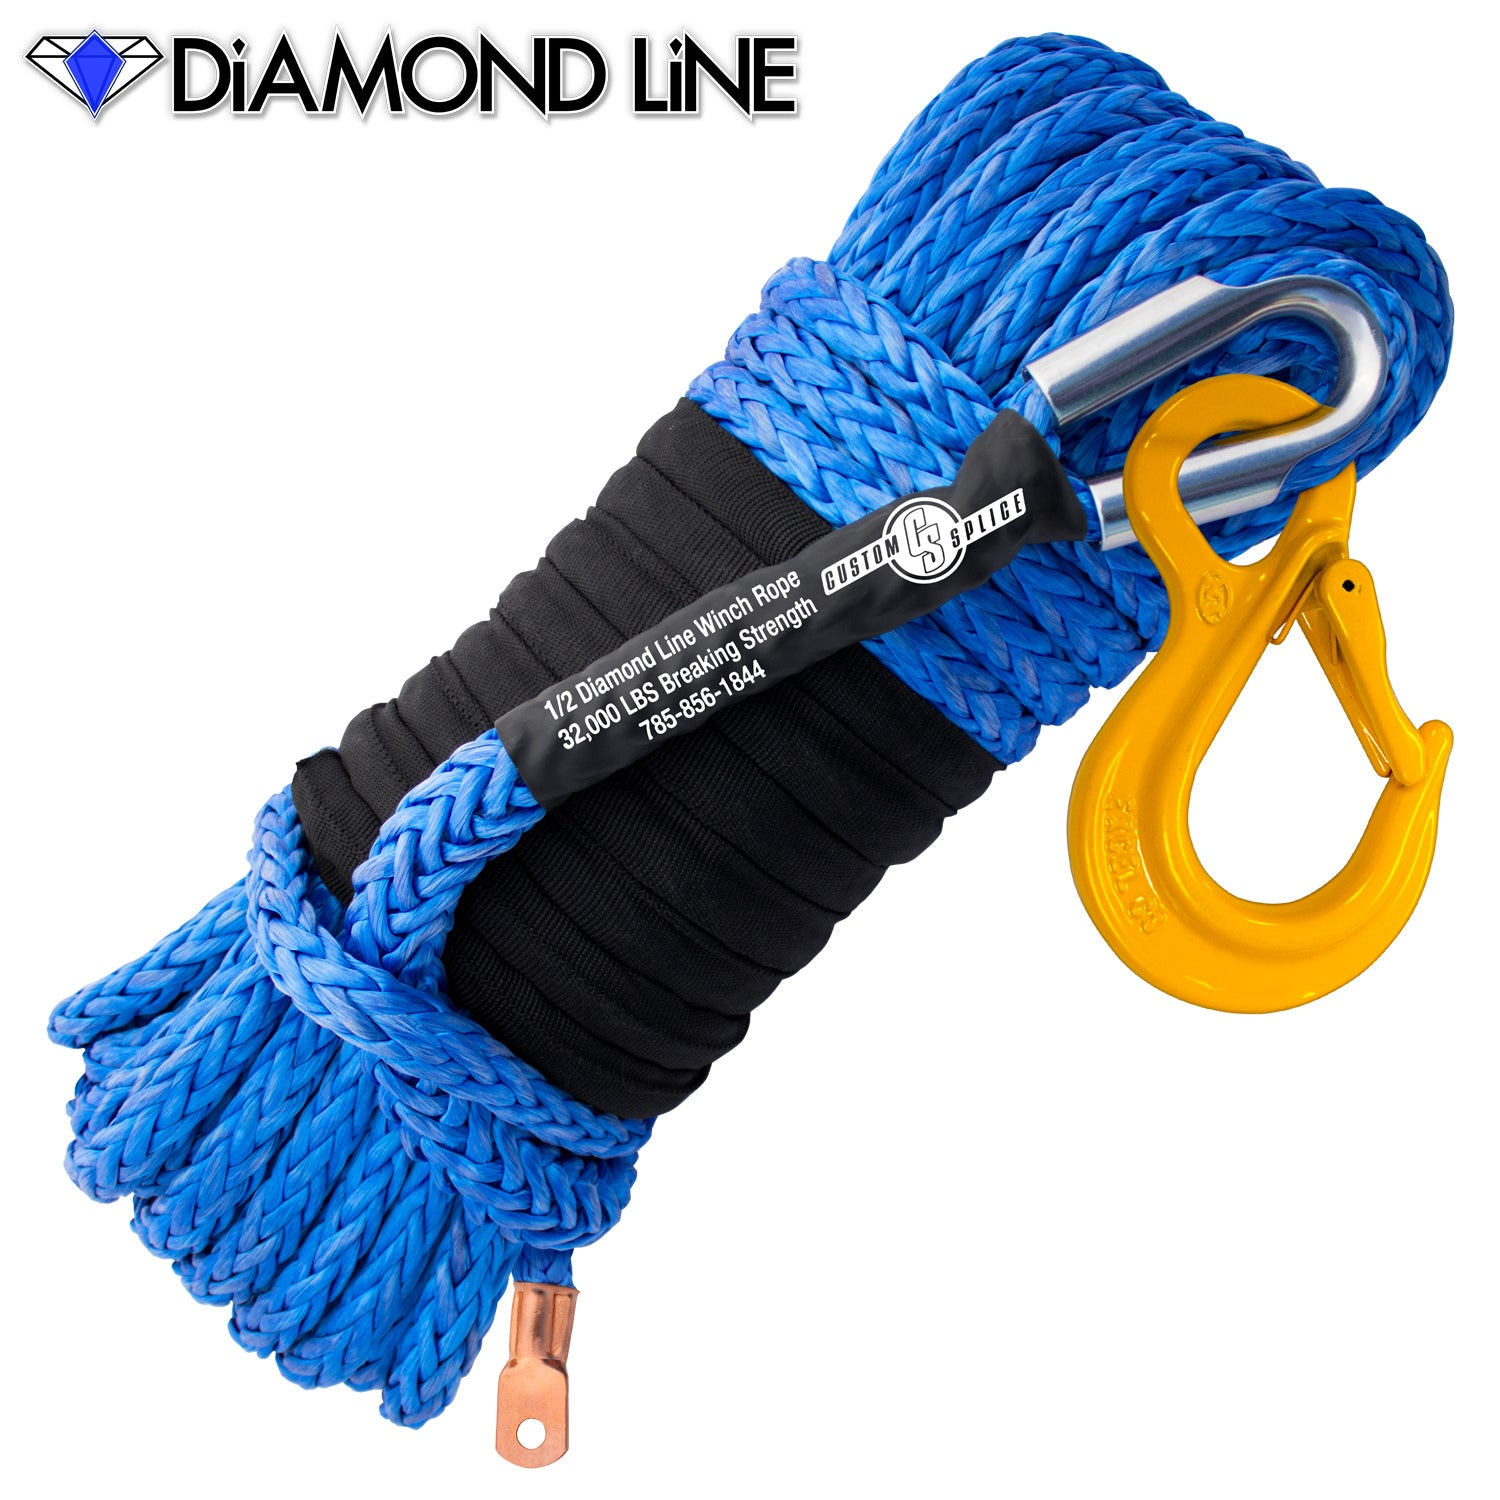 "1/2"" Main Line Winch Rope - Diamond Line"